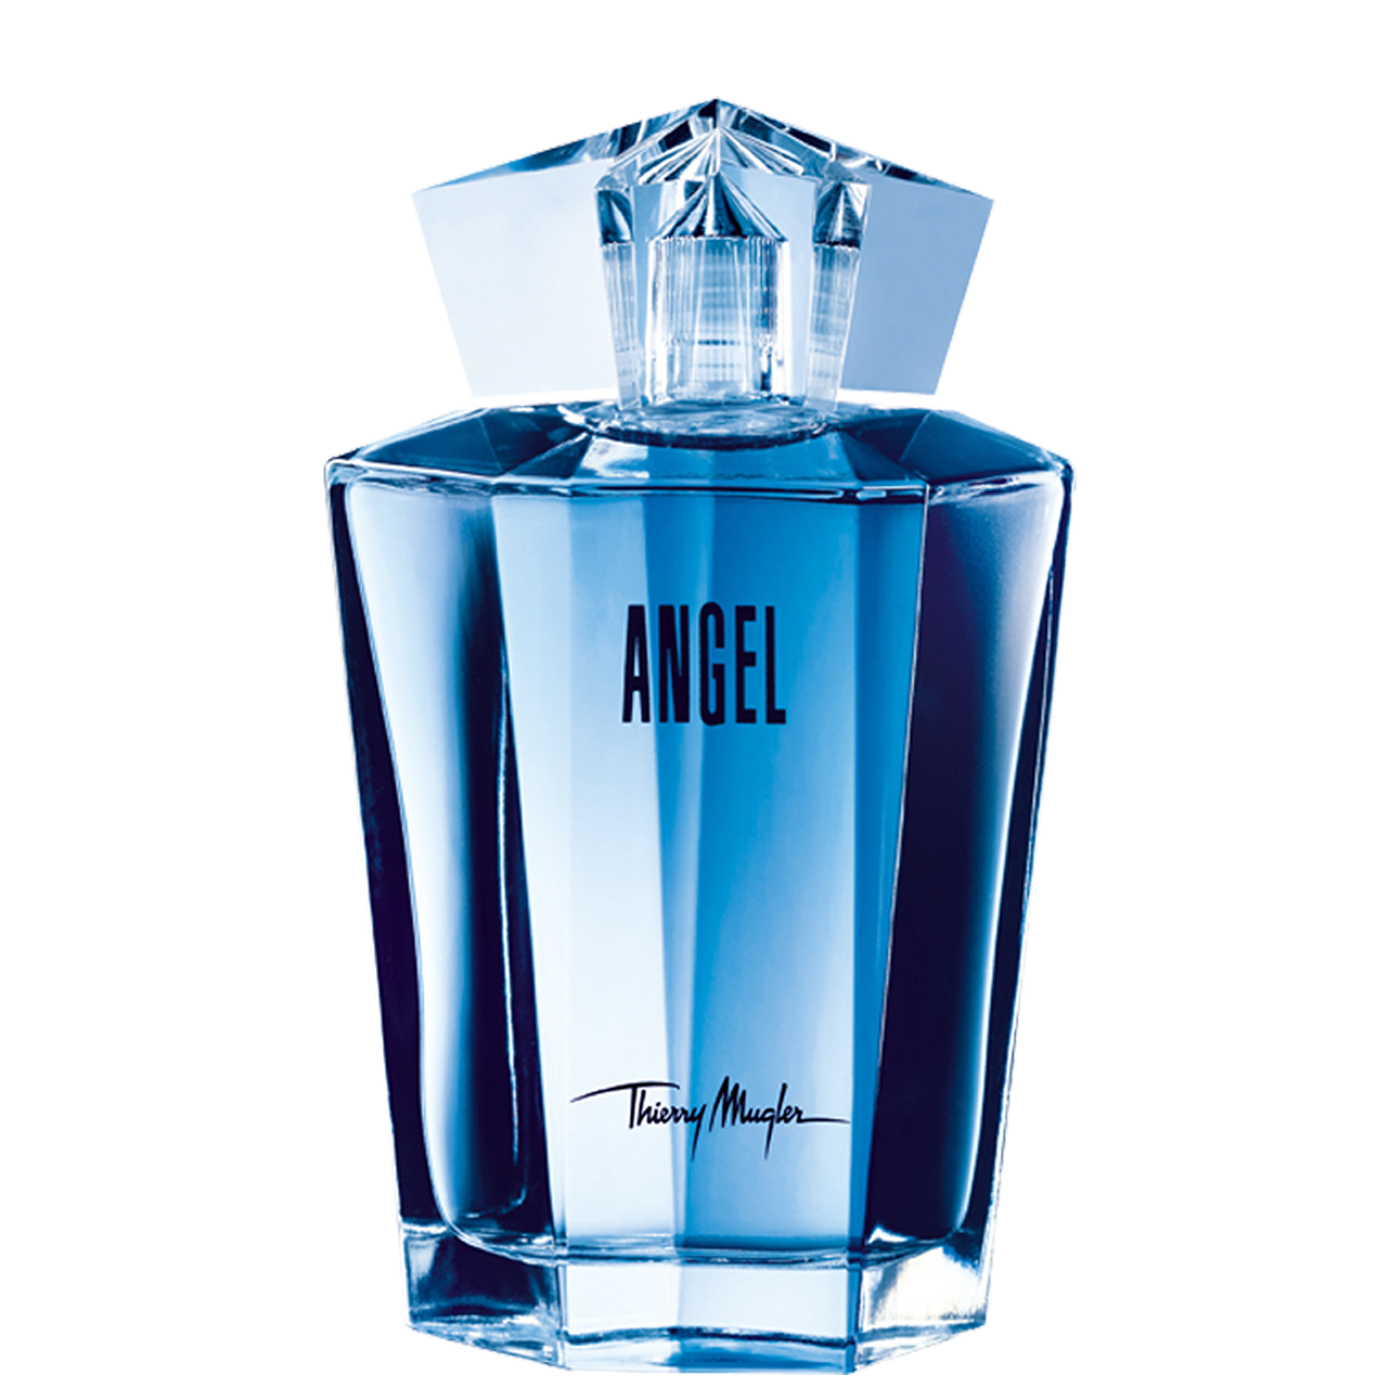 Angel Refill bottle - Angel Star shaped perfume bottles can be refilled as  if by magic with our Thierry Mugler designer womens  refill perfume bottles. 8f84629b3f